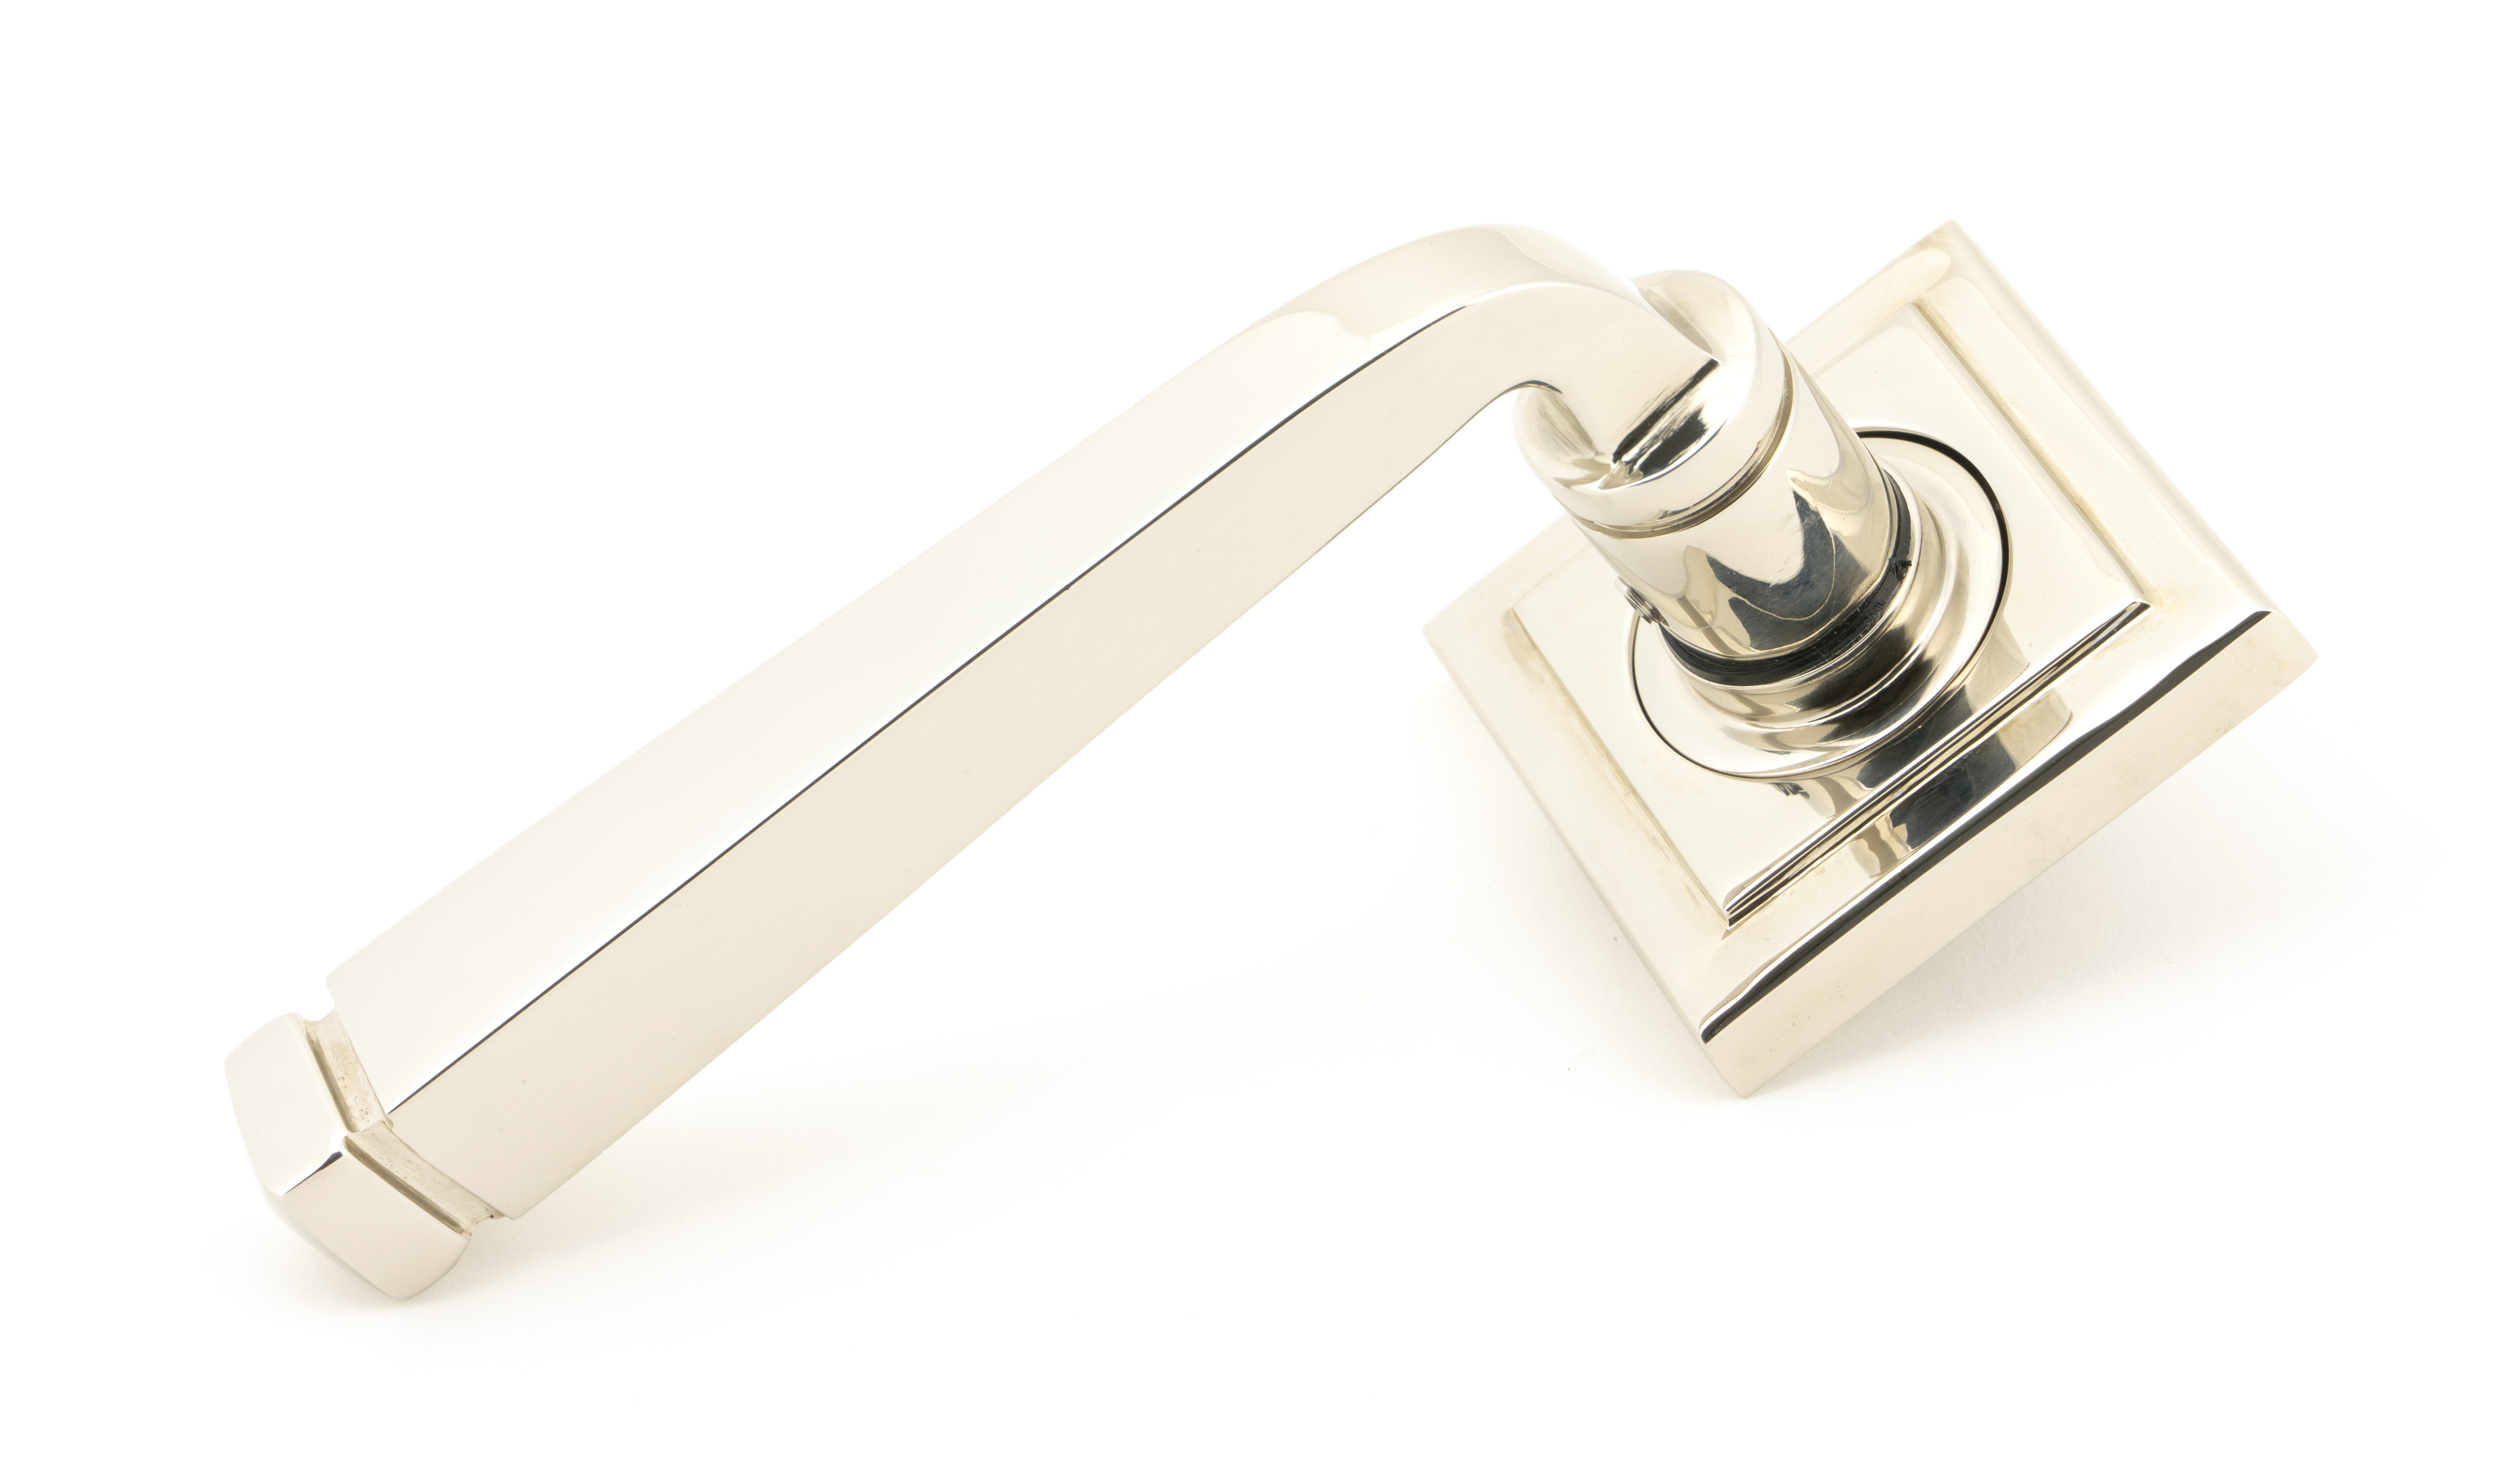 View Polished Nickel Avon Round Lever on Rose Set (Square) offered by HiF Kitchens